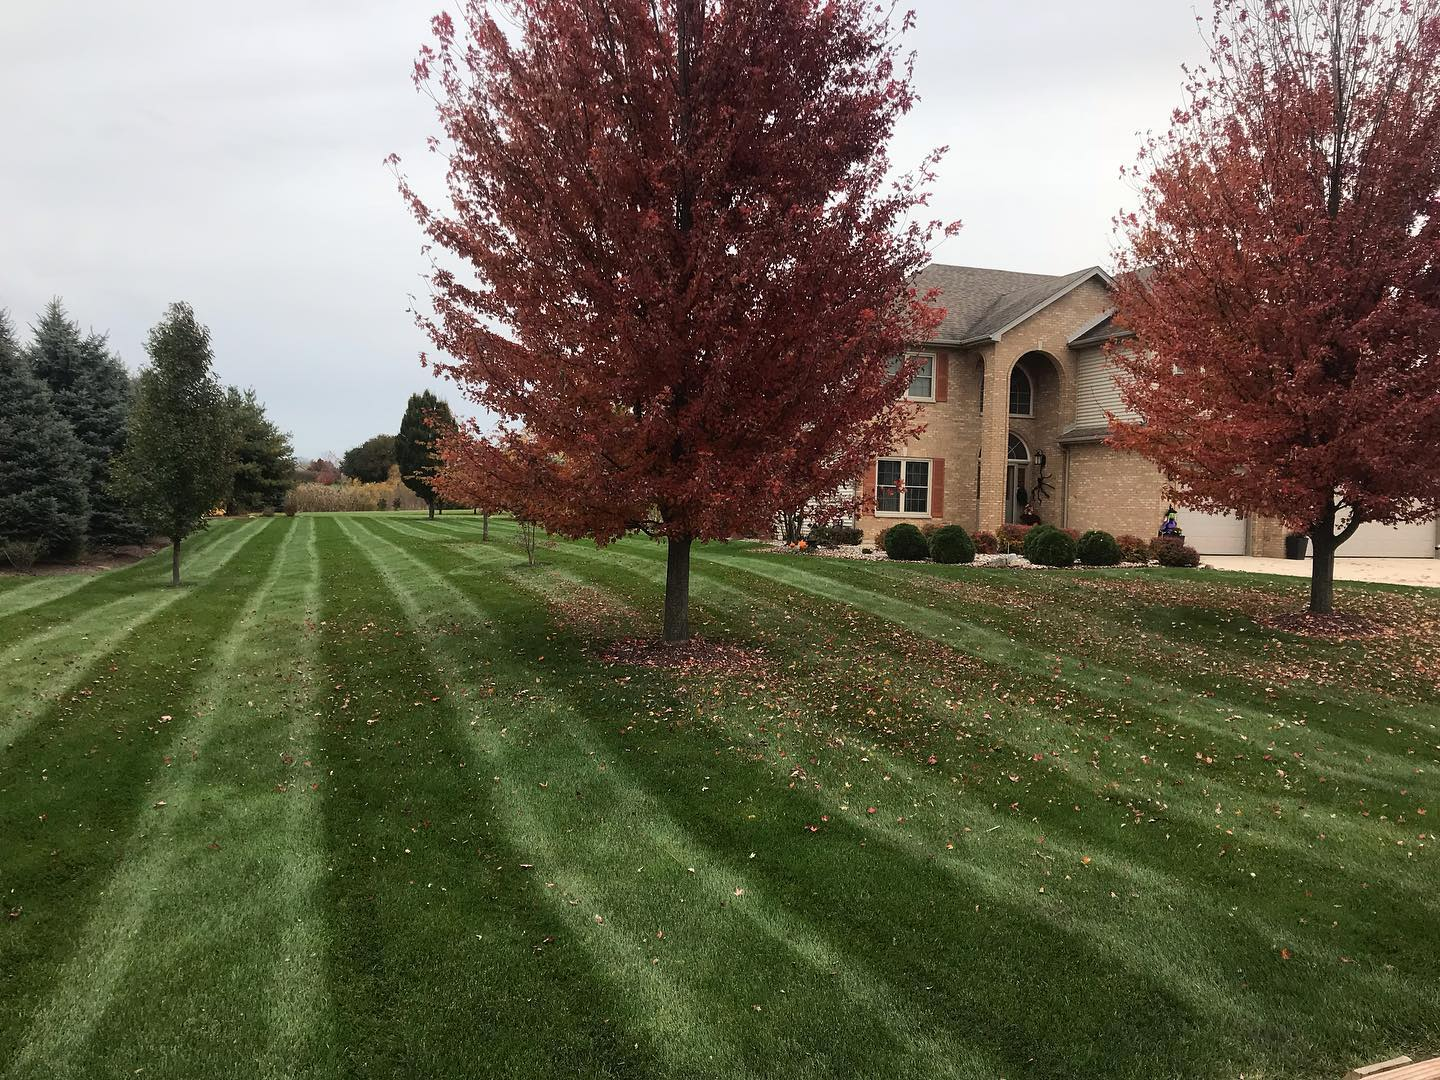 landscaping_fall_leaves_mowing.jpg